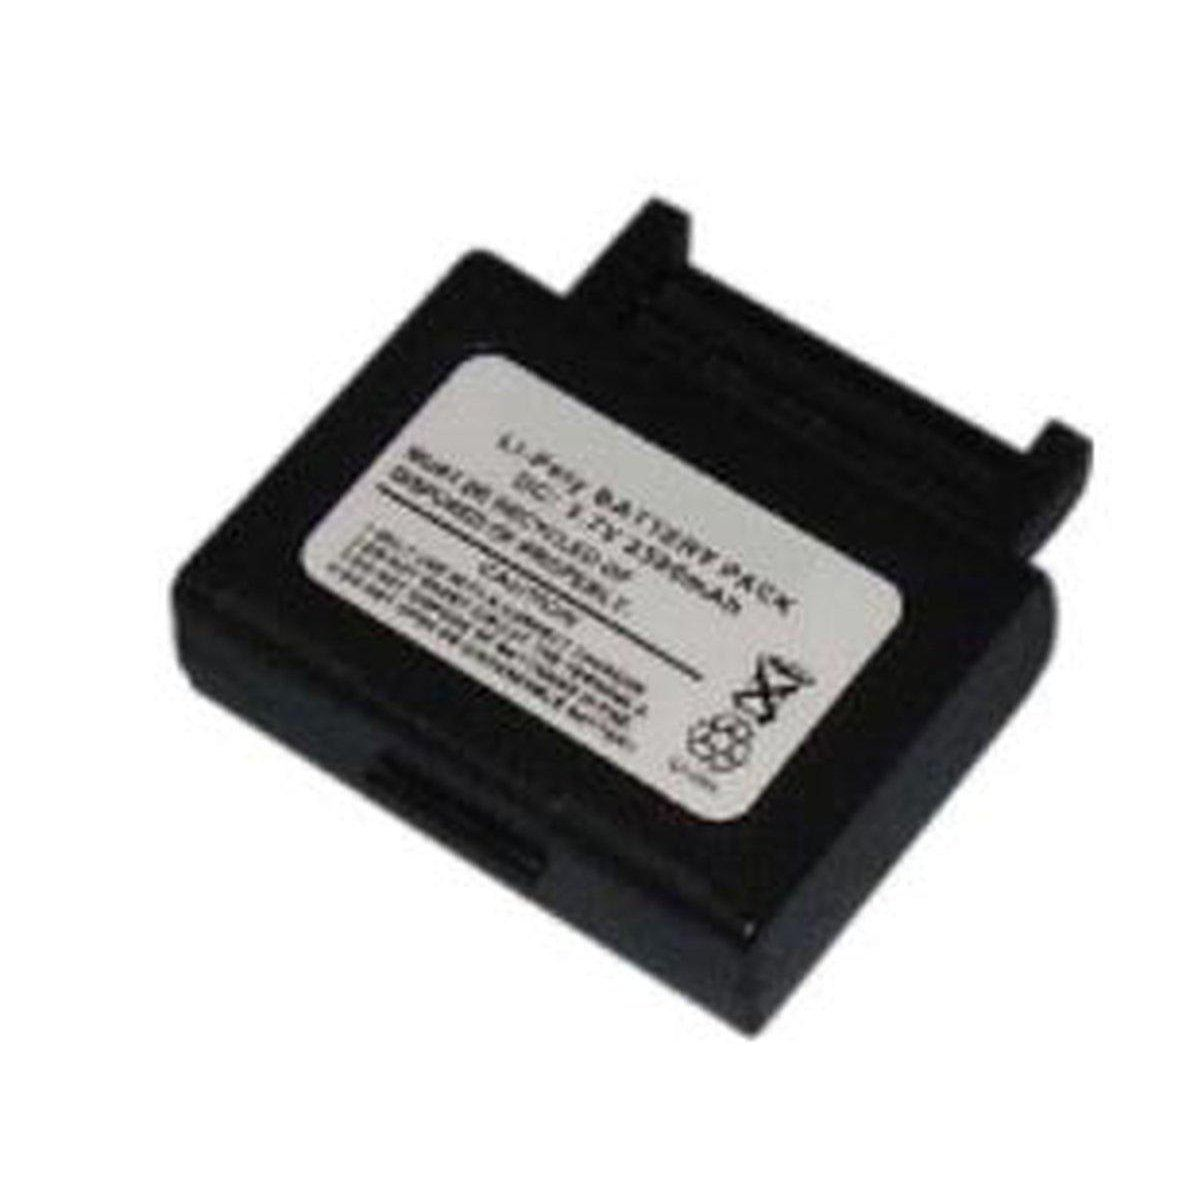 Honeywell Battery Pack for CN70/70e | 318-043-033 Barcode Scanner Honeywell